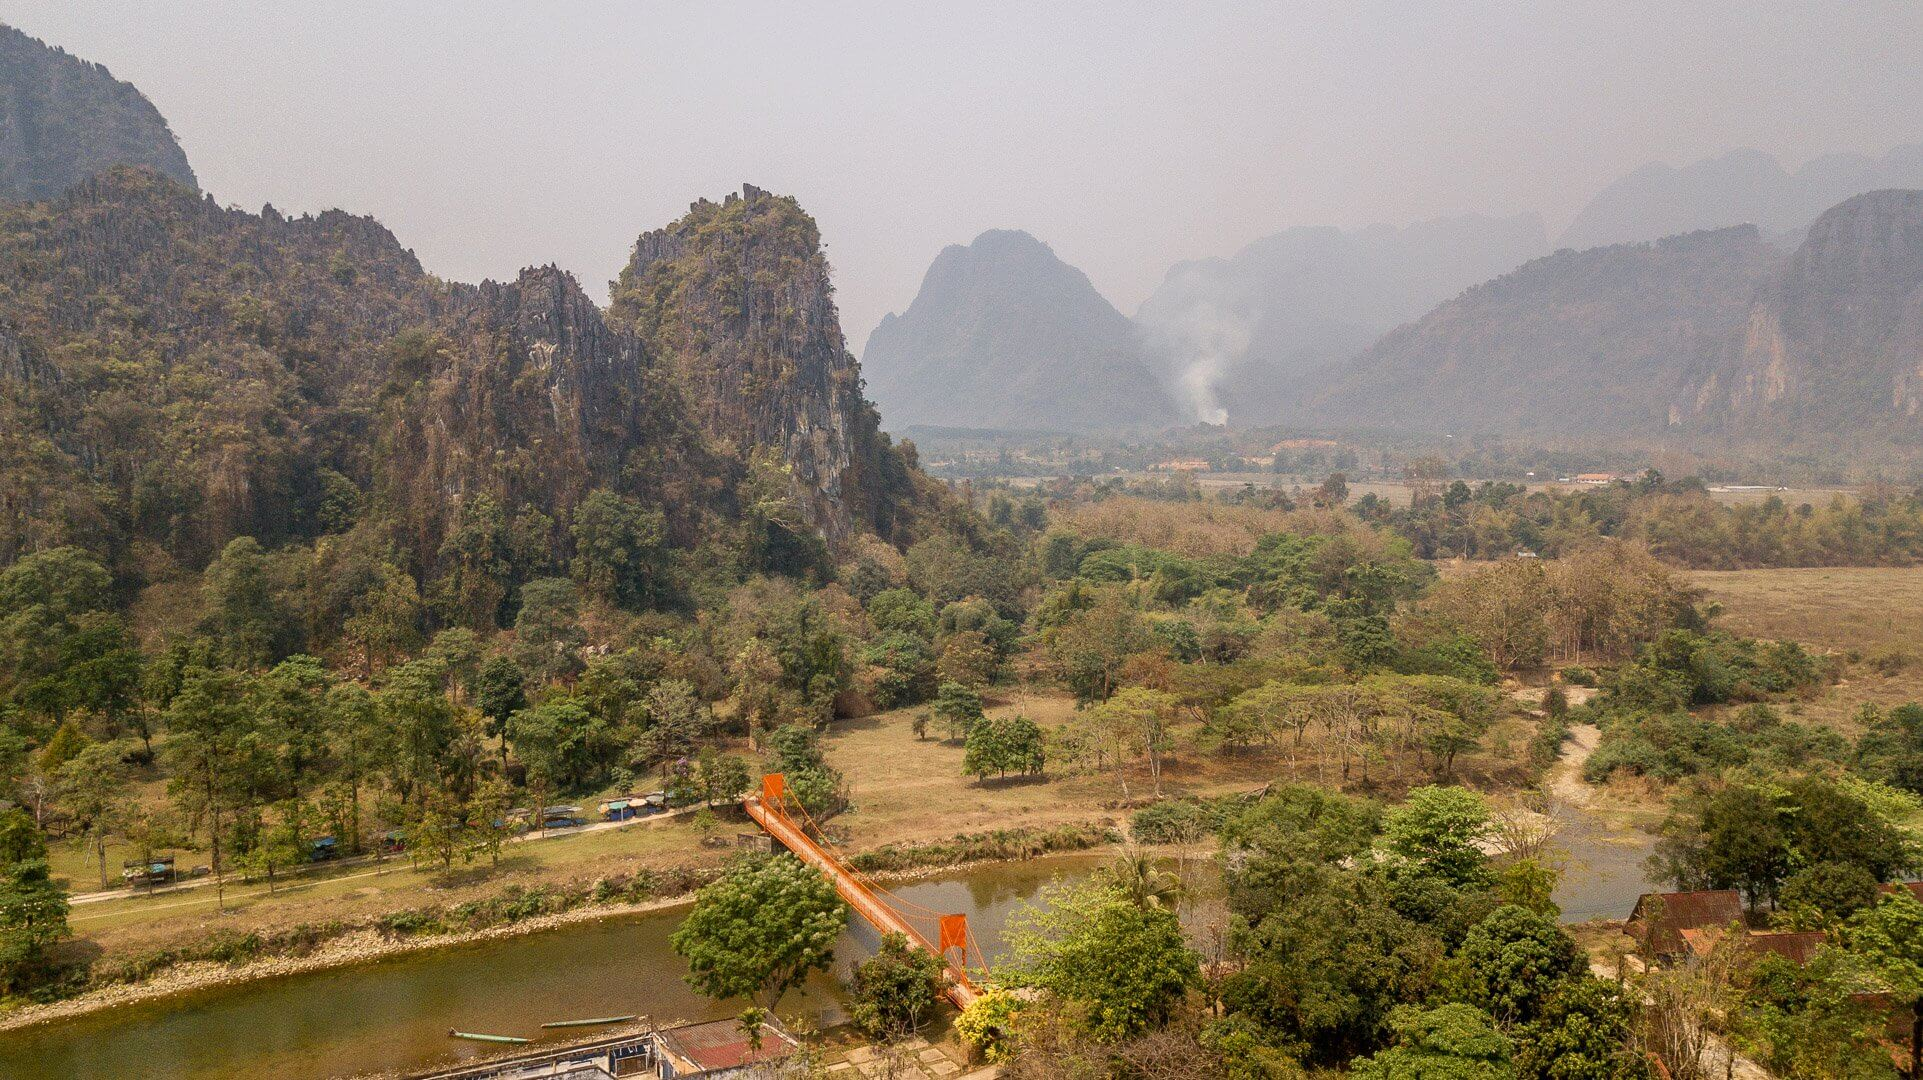 Drone shot of the orange pedestrian bridge in Vang Vieng, Laos